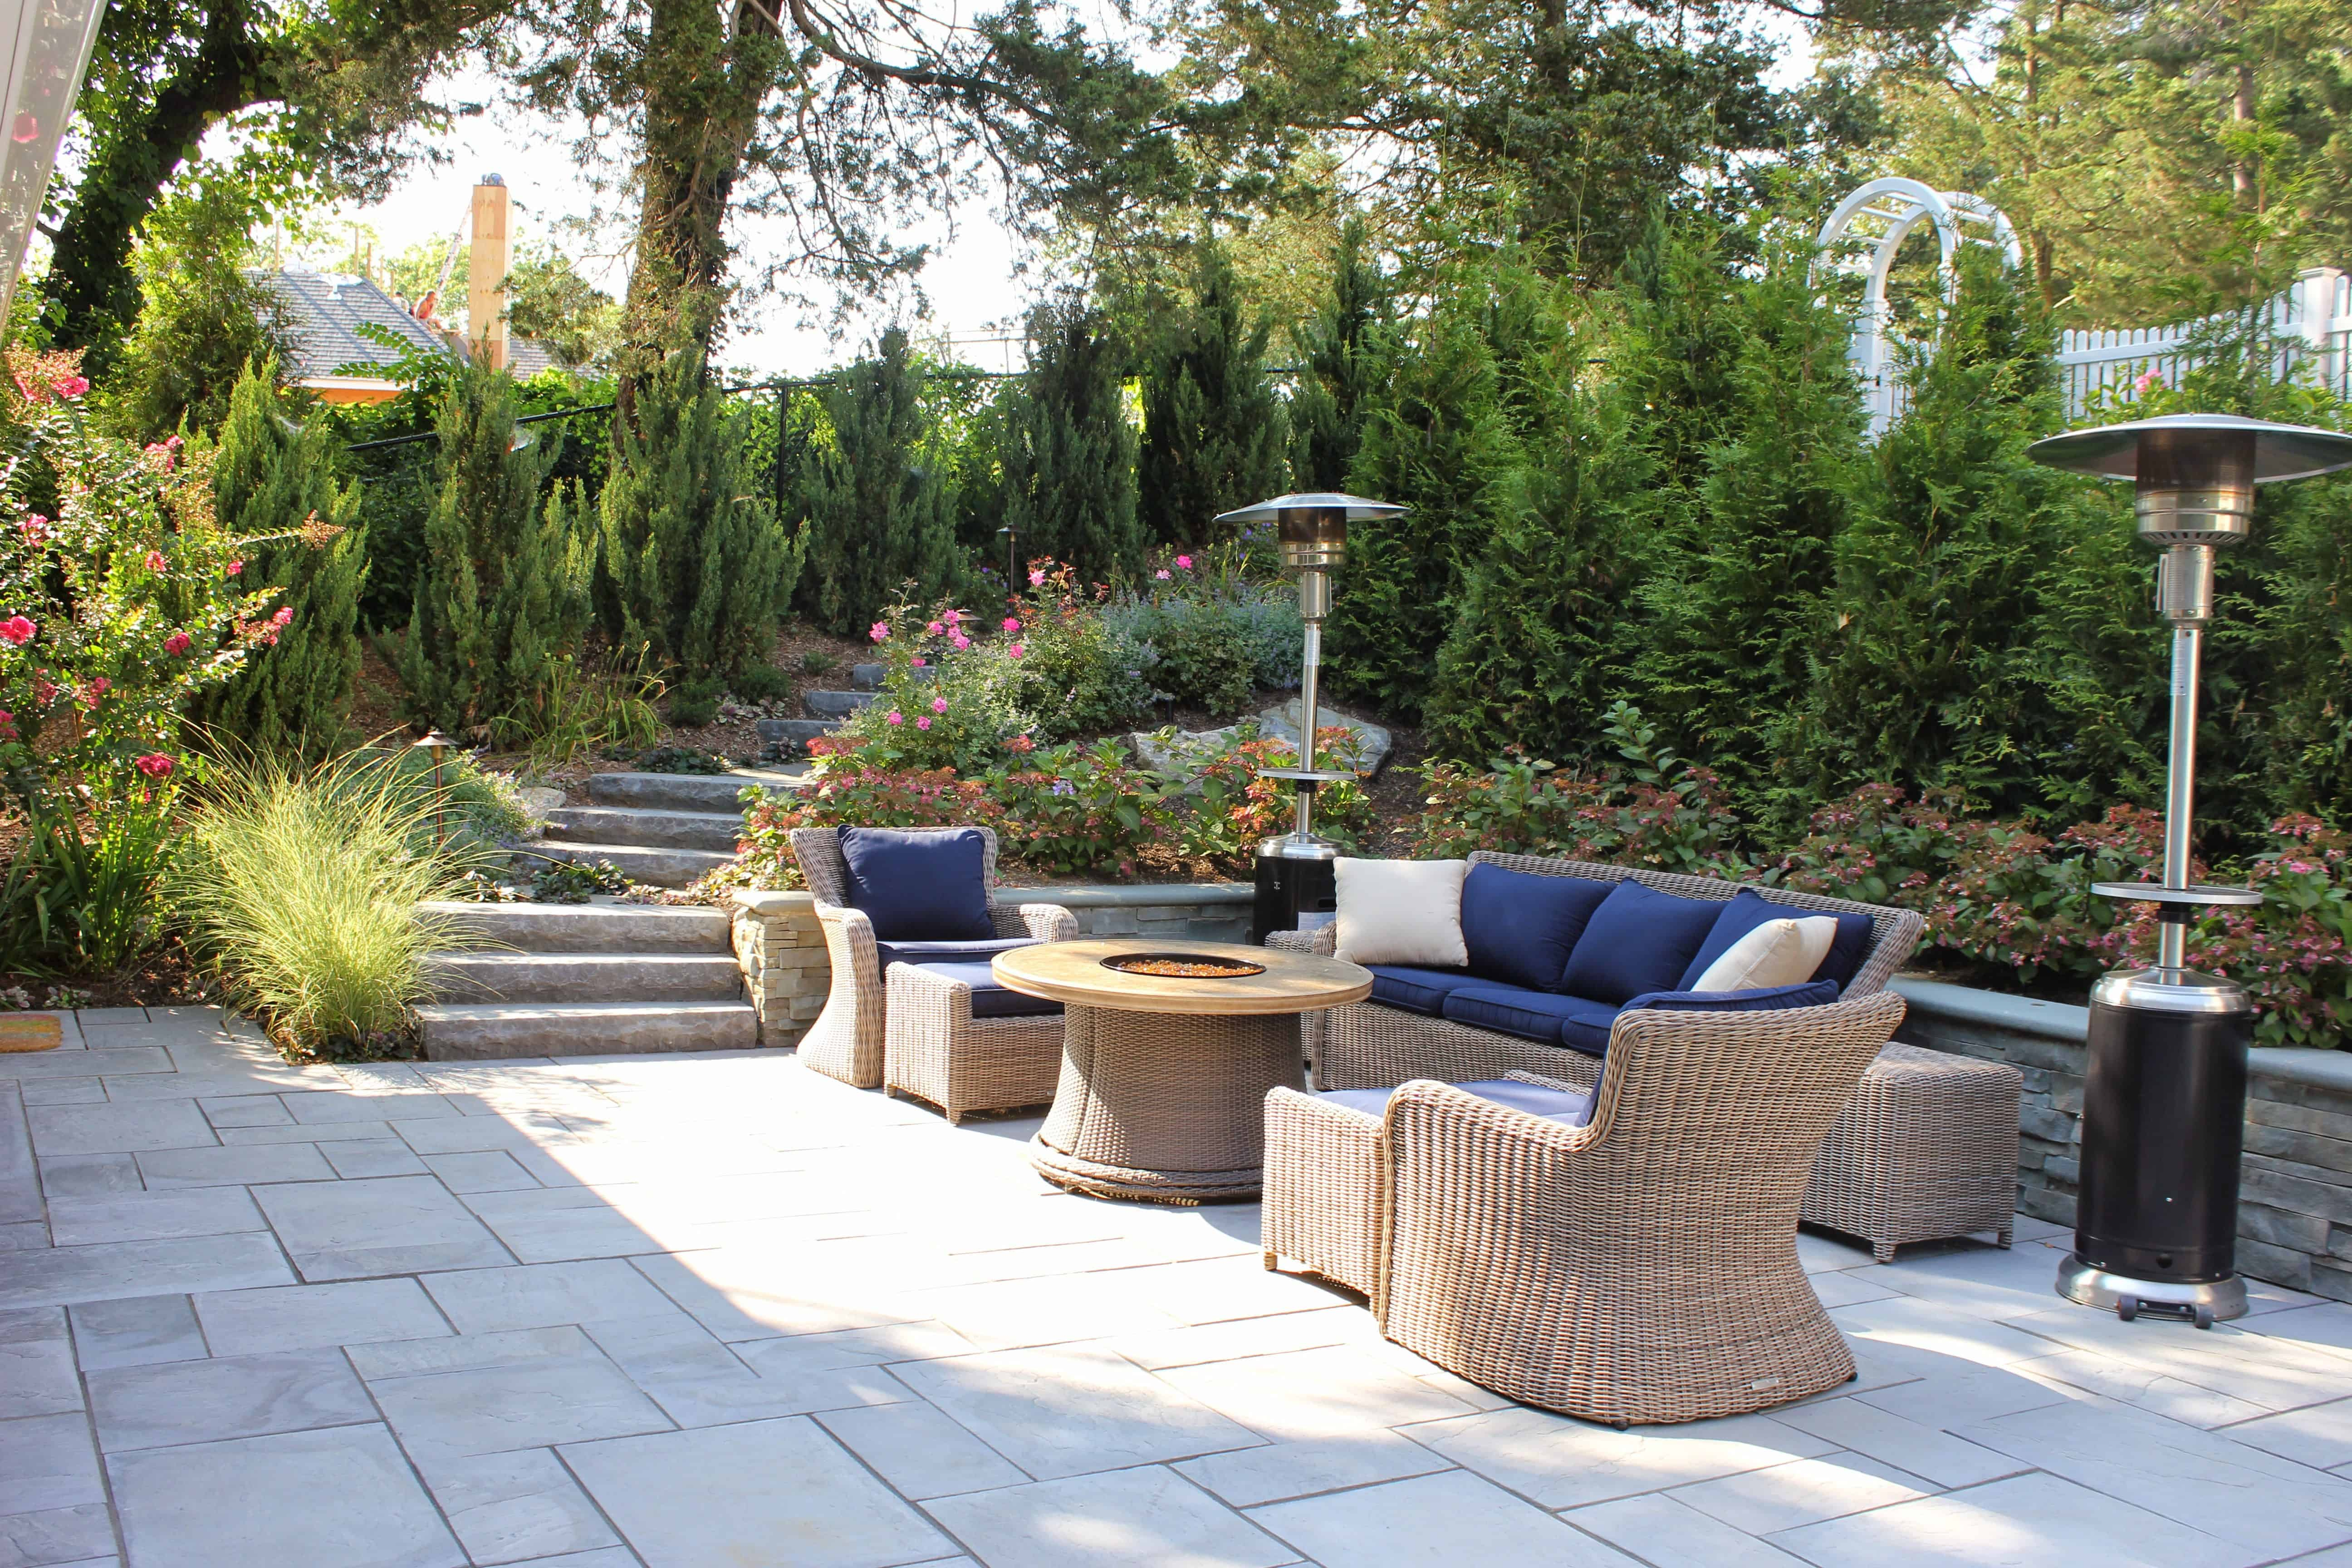 Landscape Plantings – Blue Point Juniper and Arborvitae Plicatta with Hydrangea and flowering perennials – Manhasset, Long Island NY